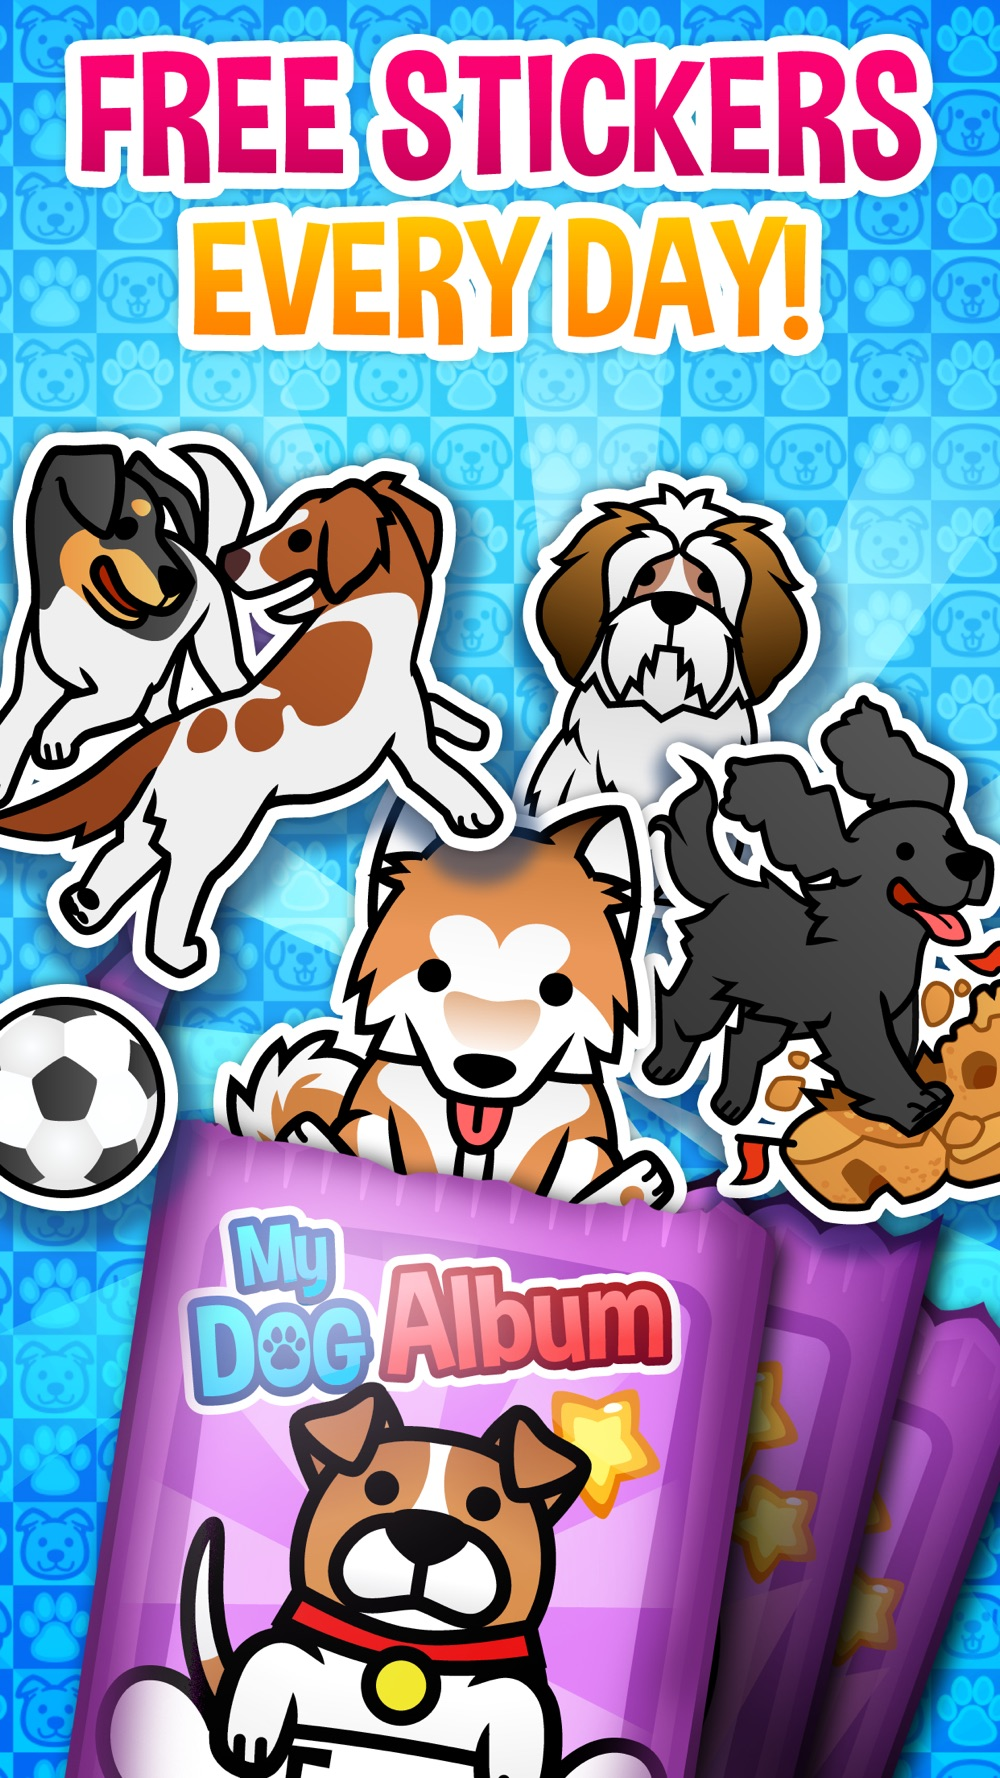 My Dog Album - Pet Sticker Book Game hack tool